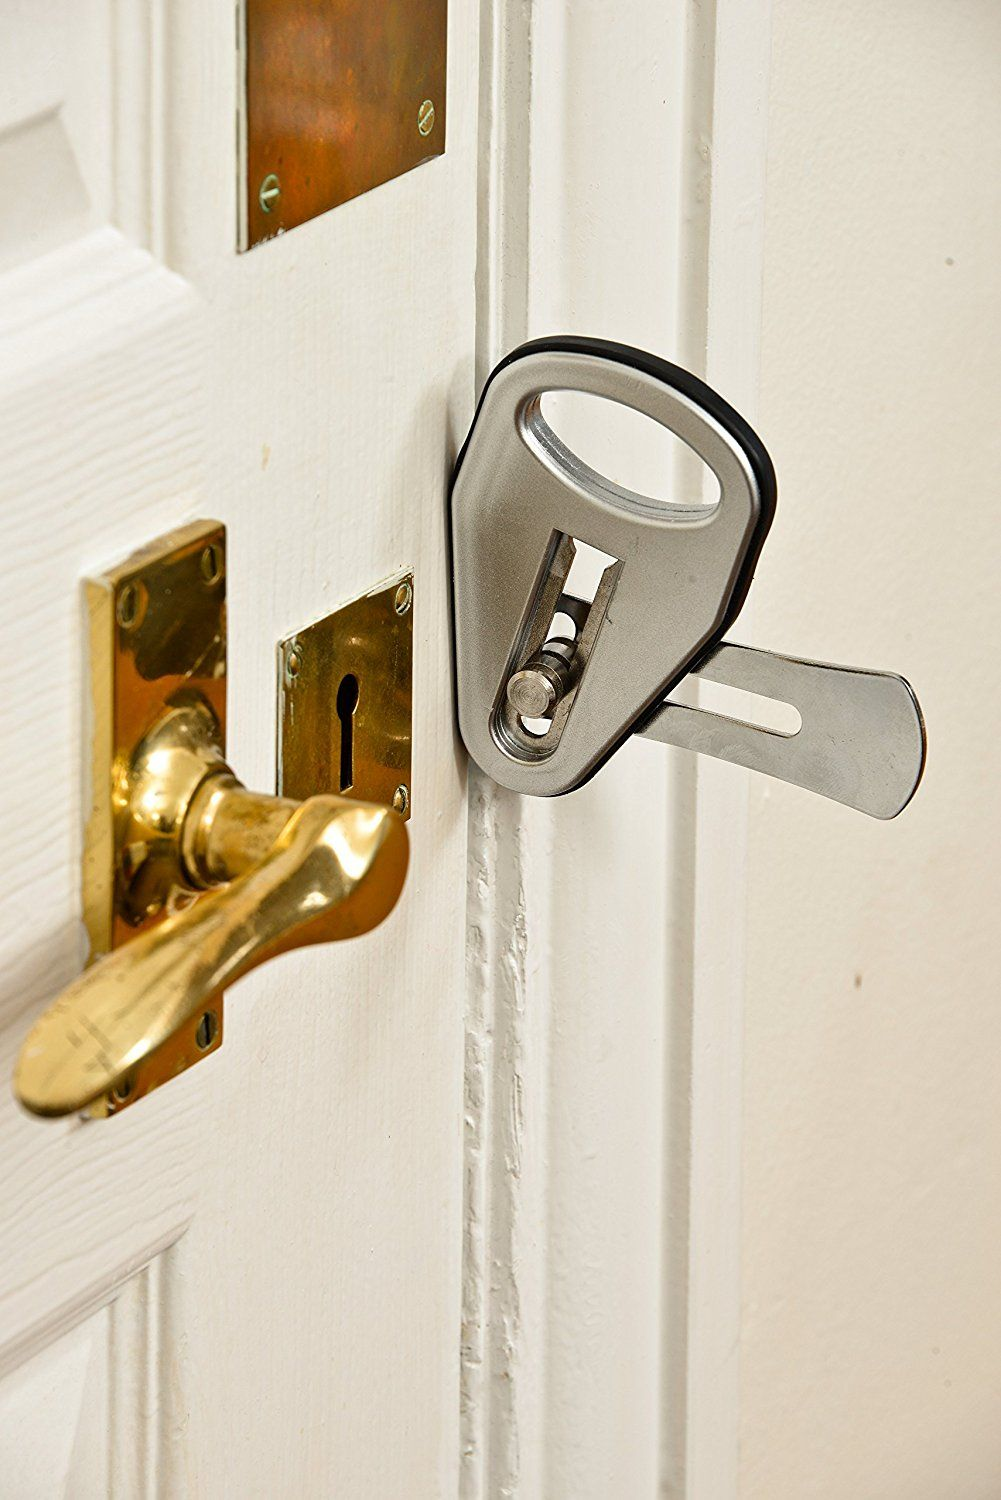 The Easylock The Lightweight, Easy to Install, Super